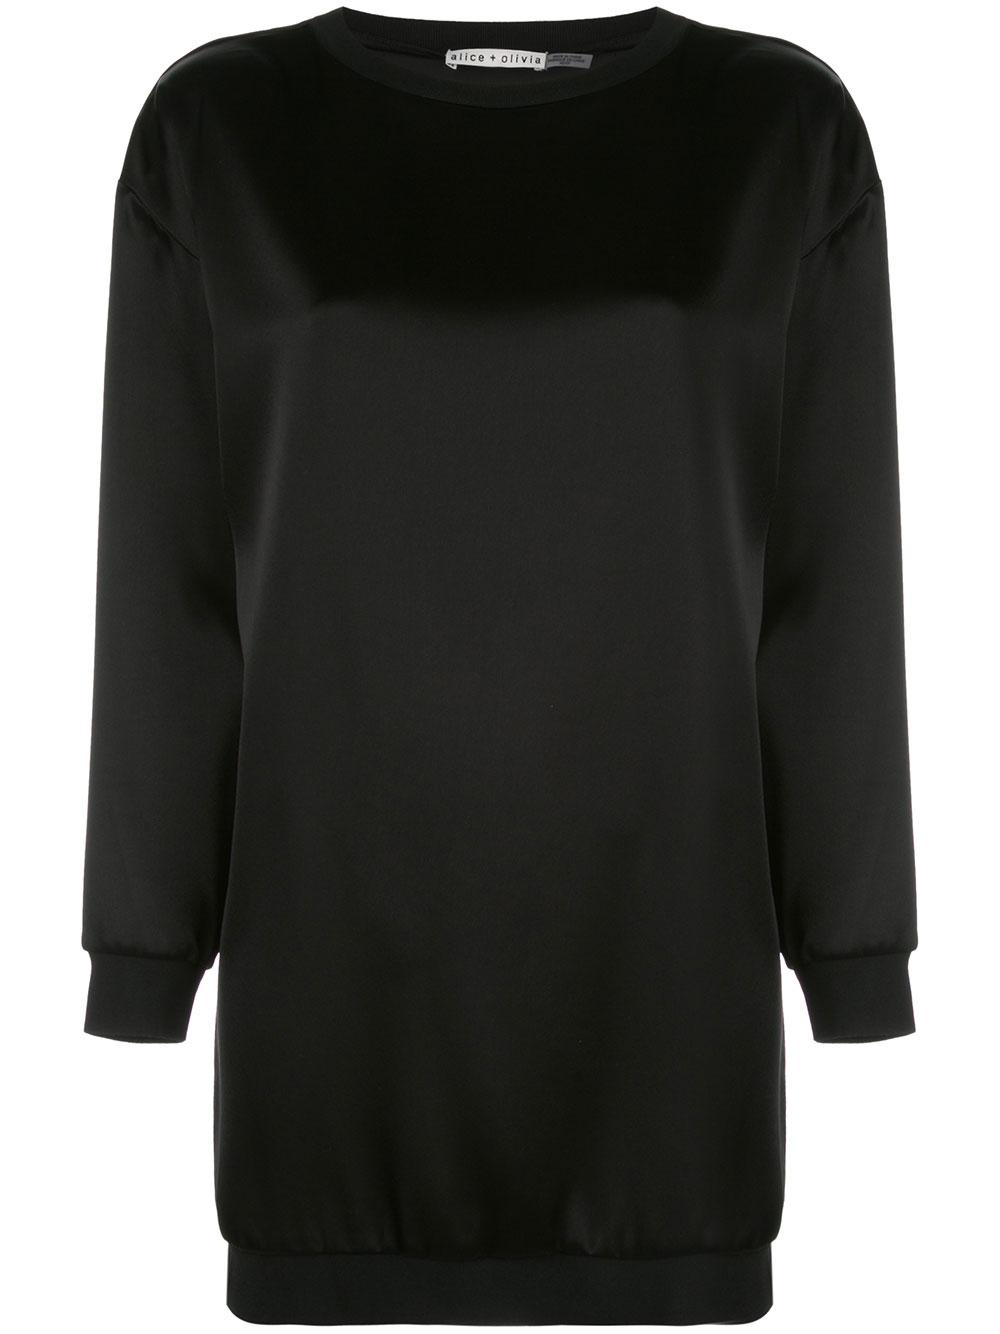 Drea Crew Neck Sweatshirt Dress